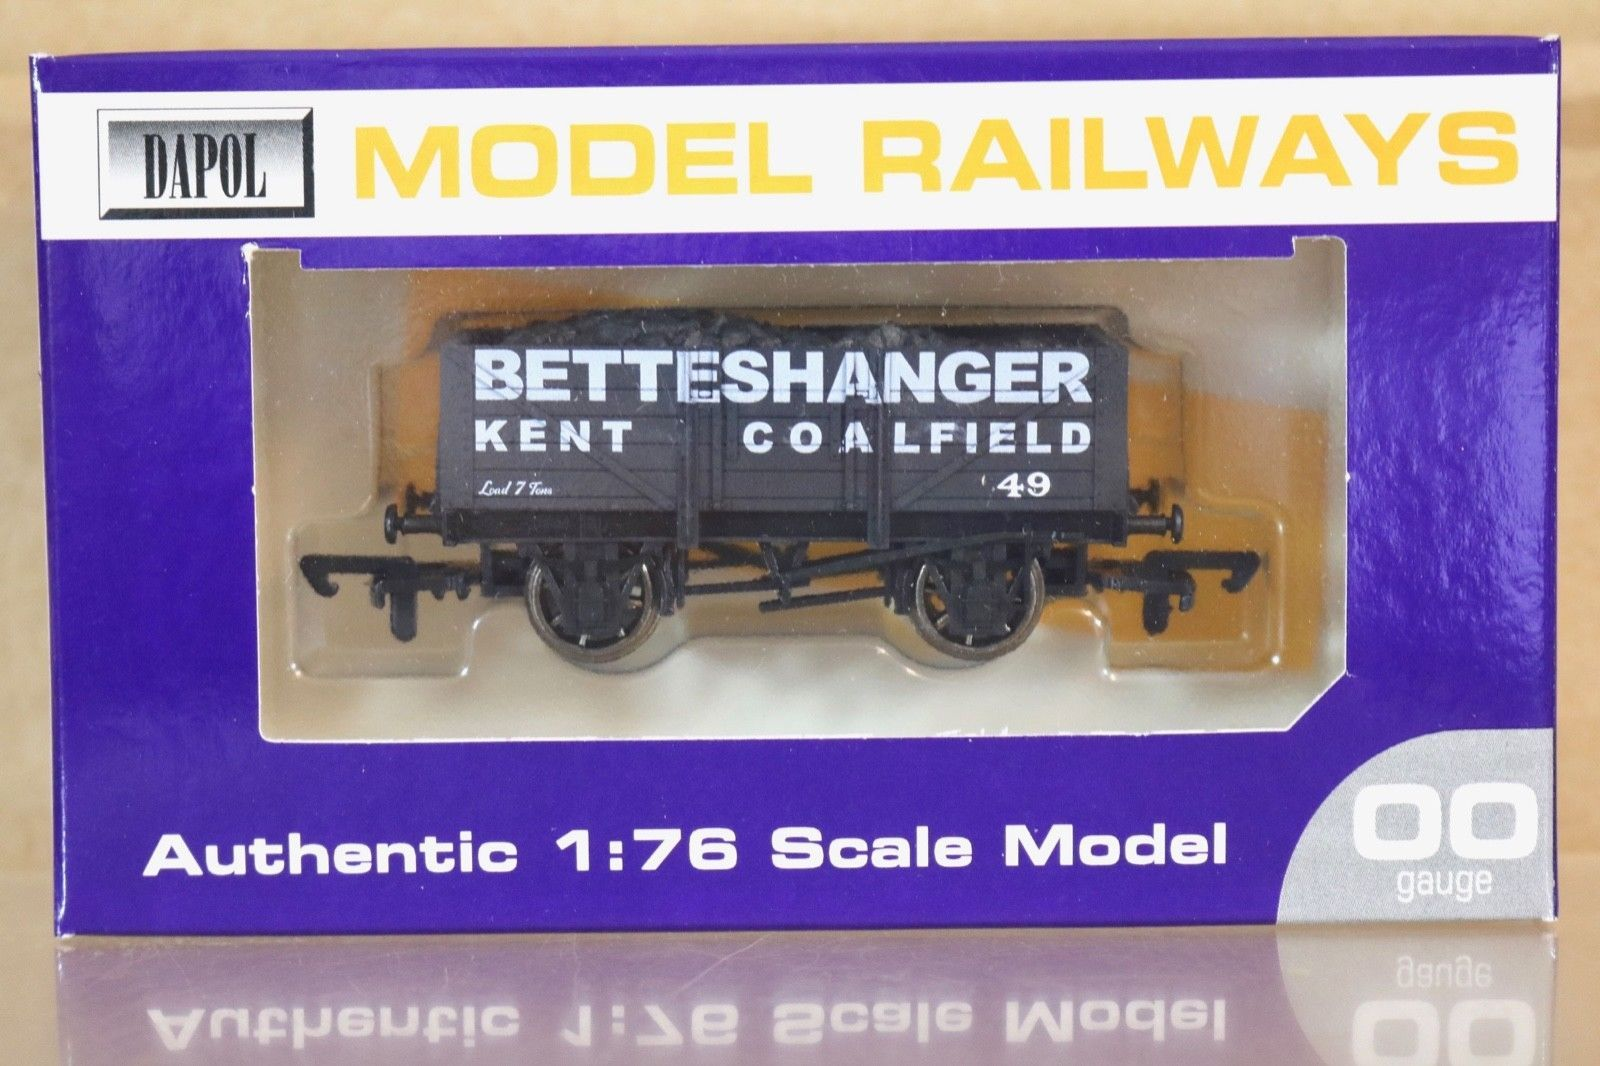 7 Plank Wagon 'Betteshanger' Train - Dapol (7 Plank Wagon) front image (front cover)